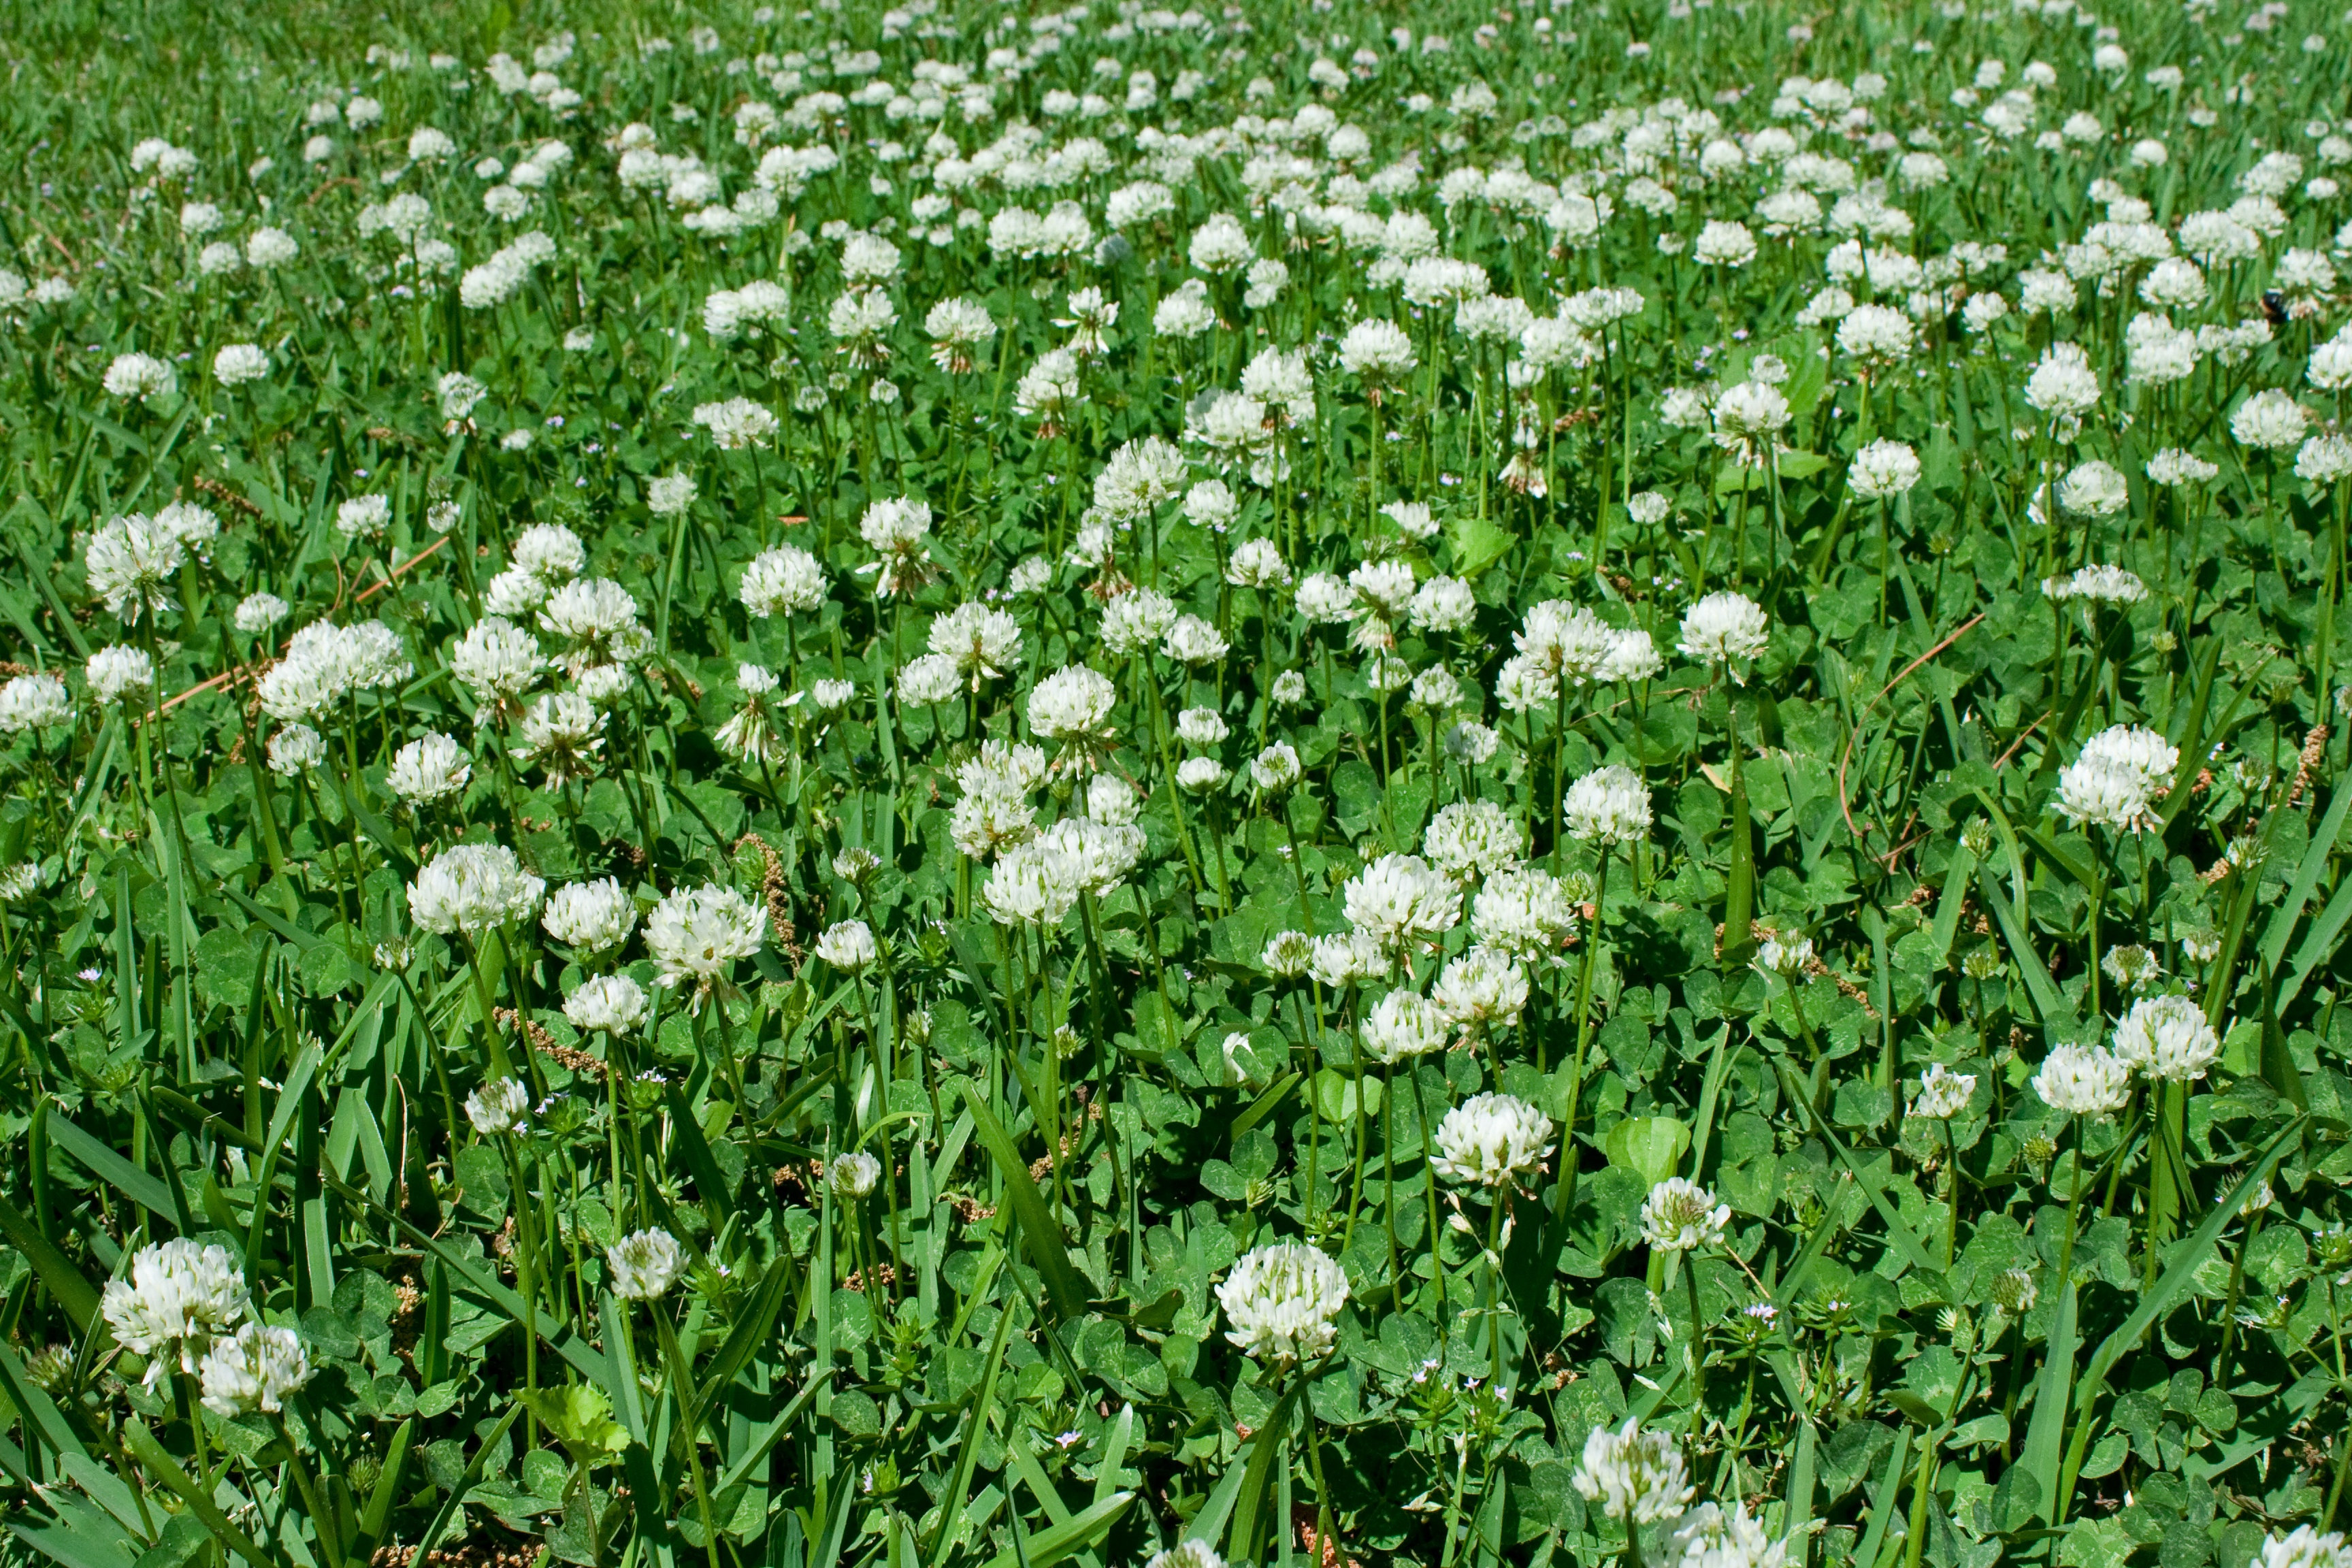 how-to-control-white-clover-in-lawn.jpg